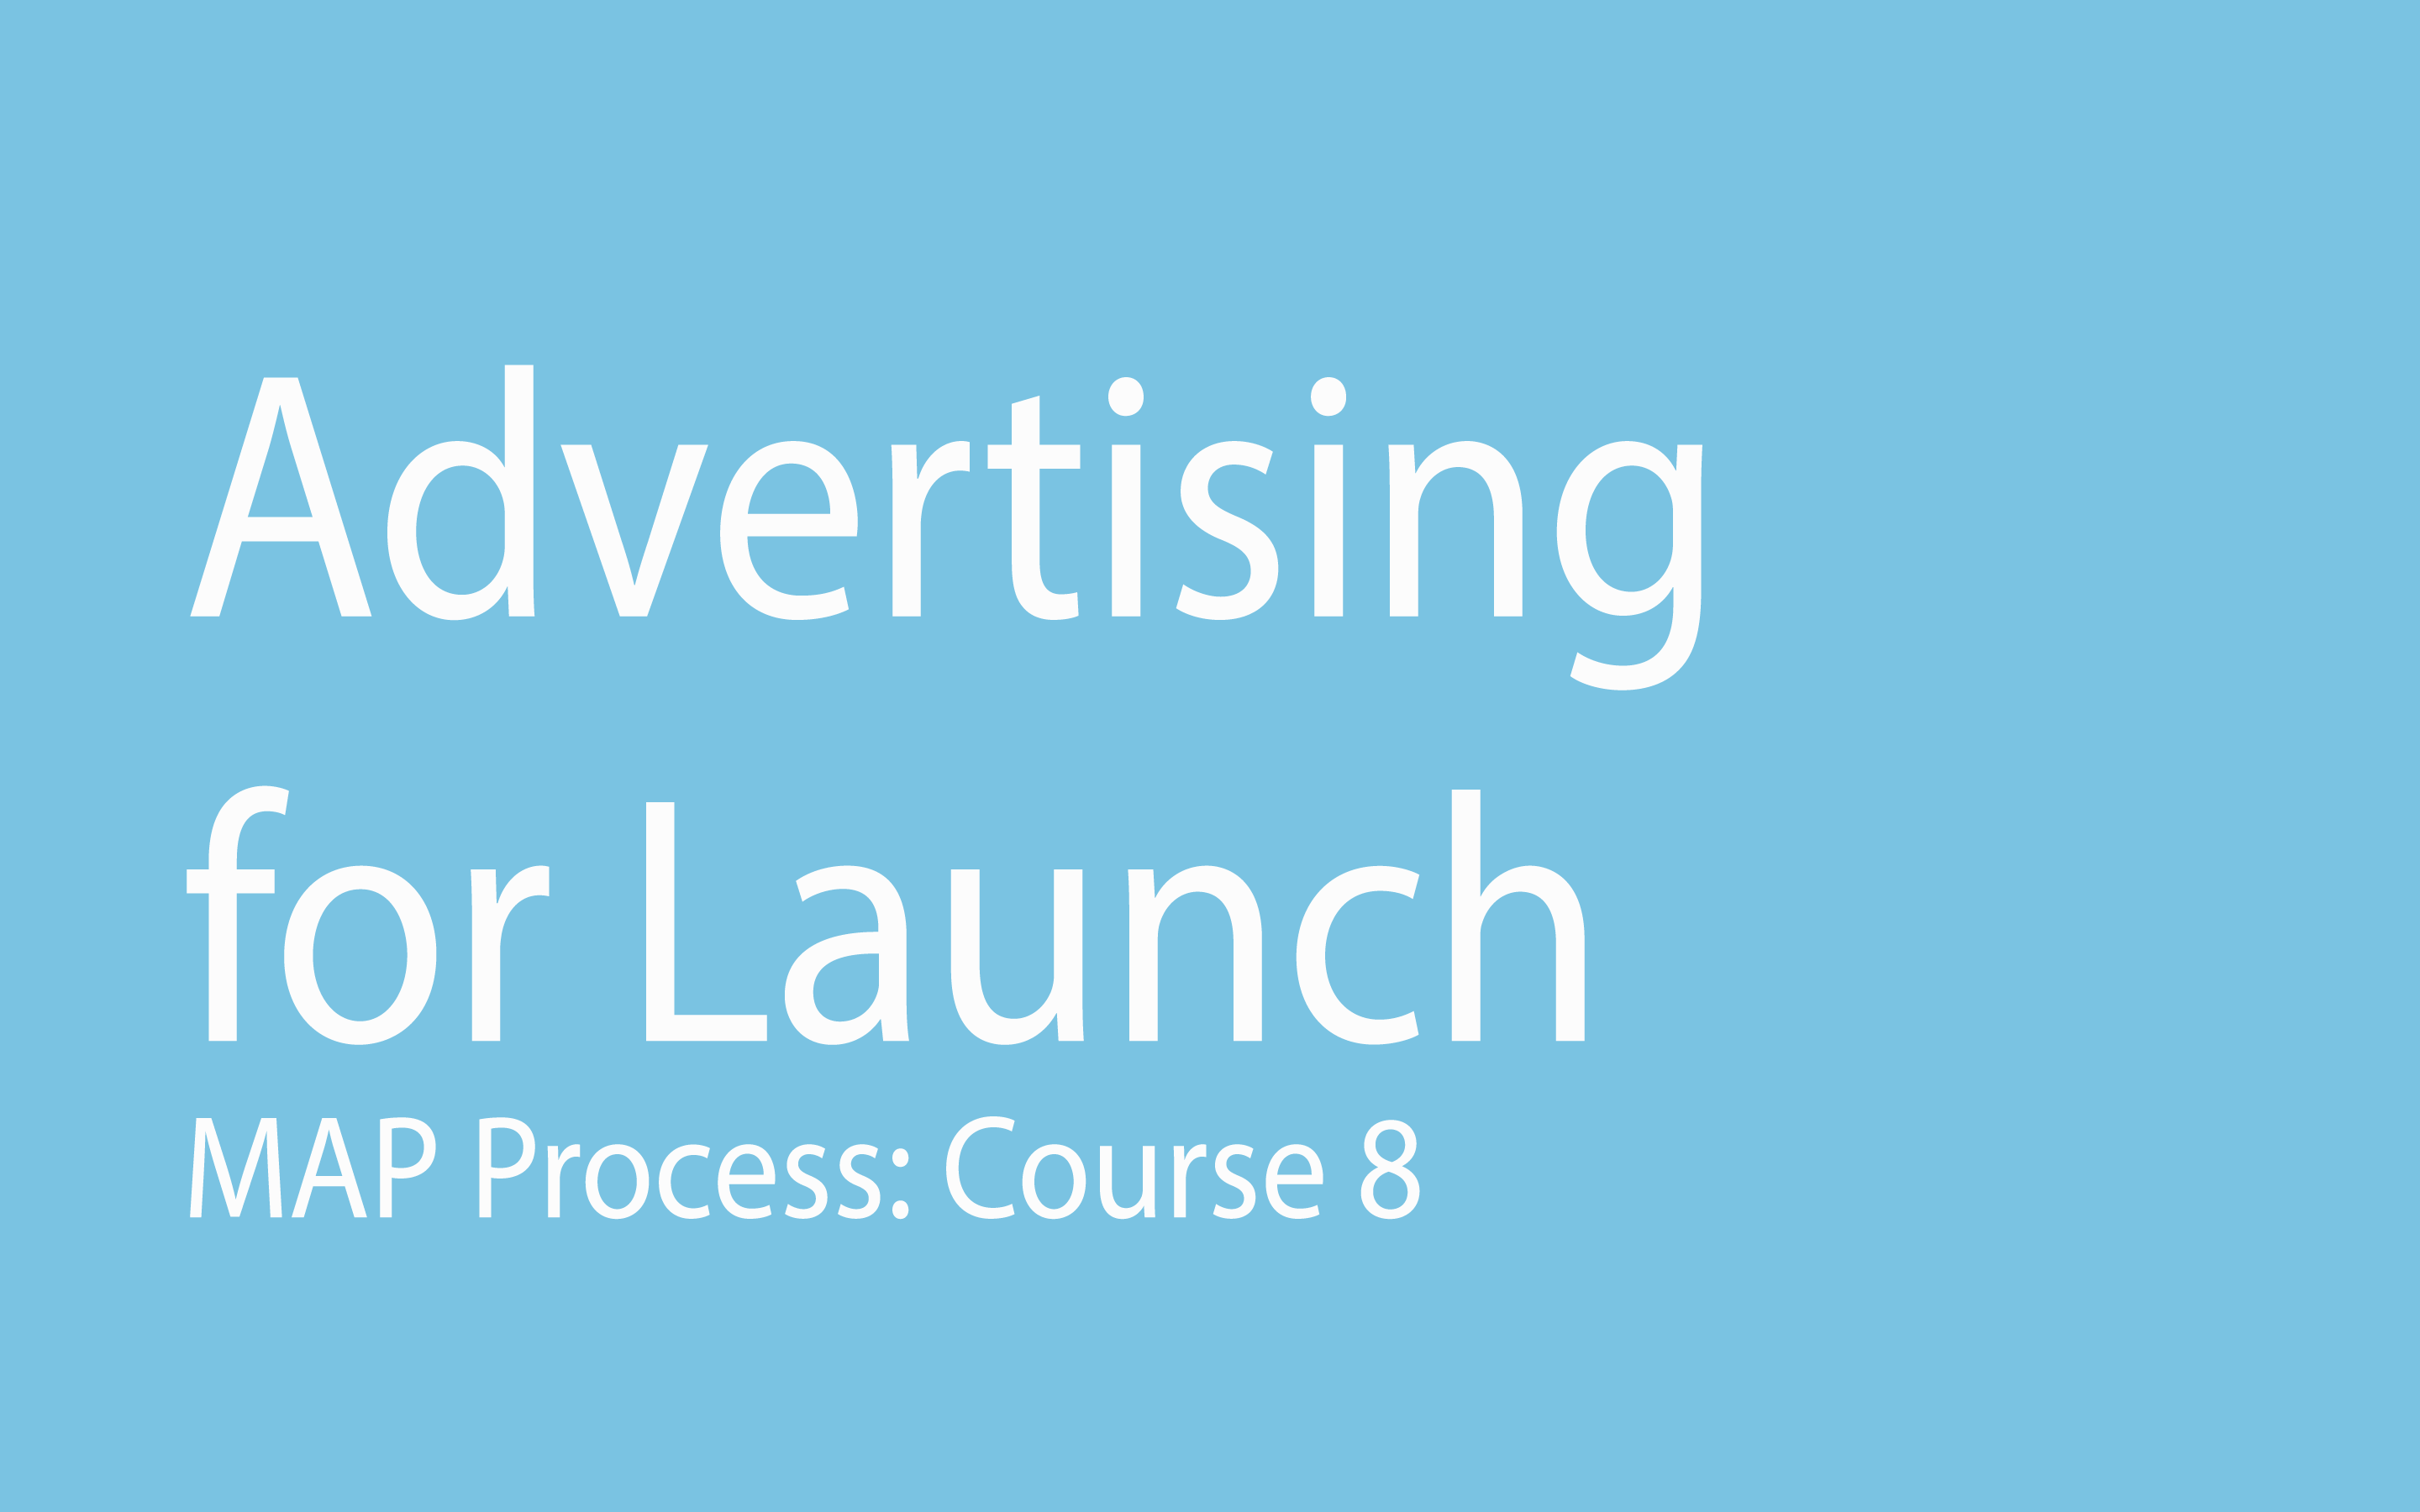 Advertising for Launch